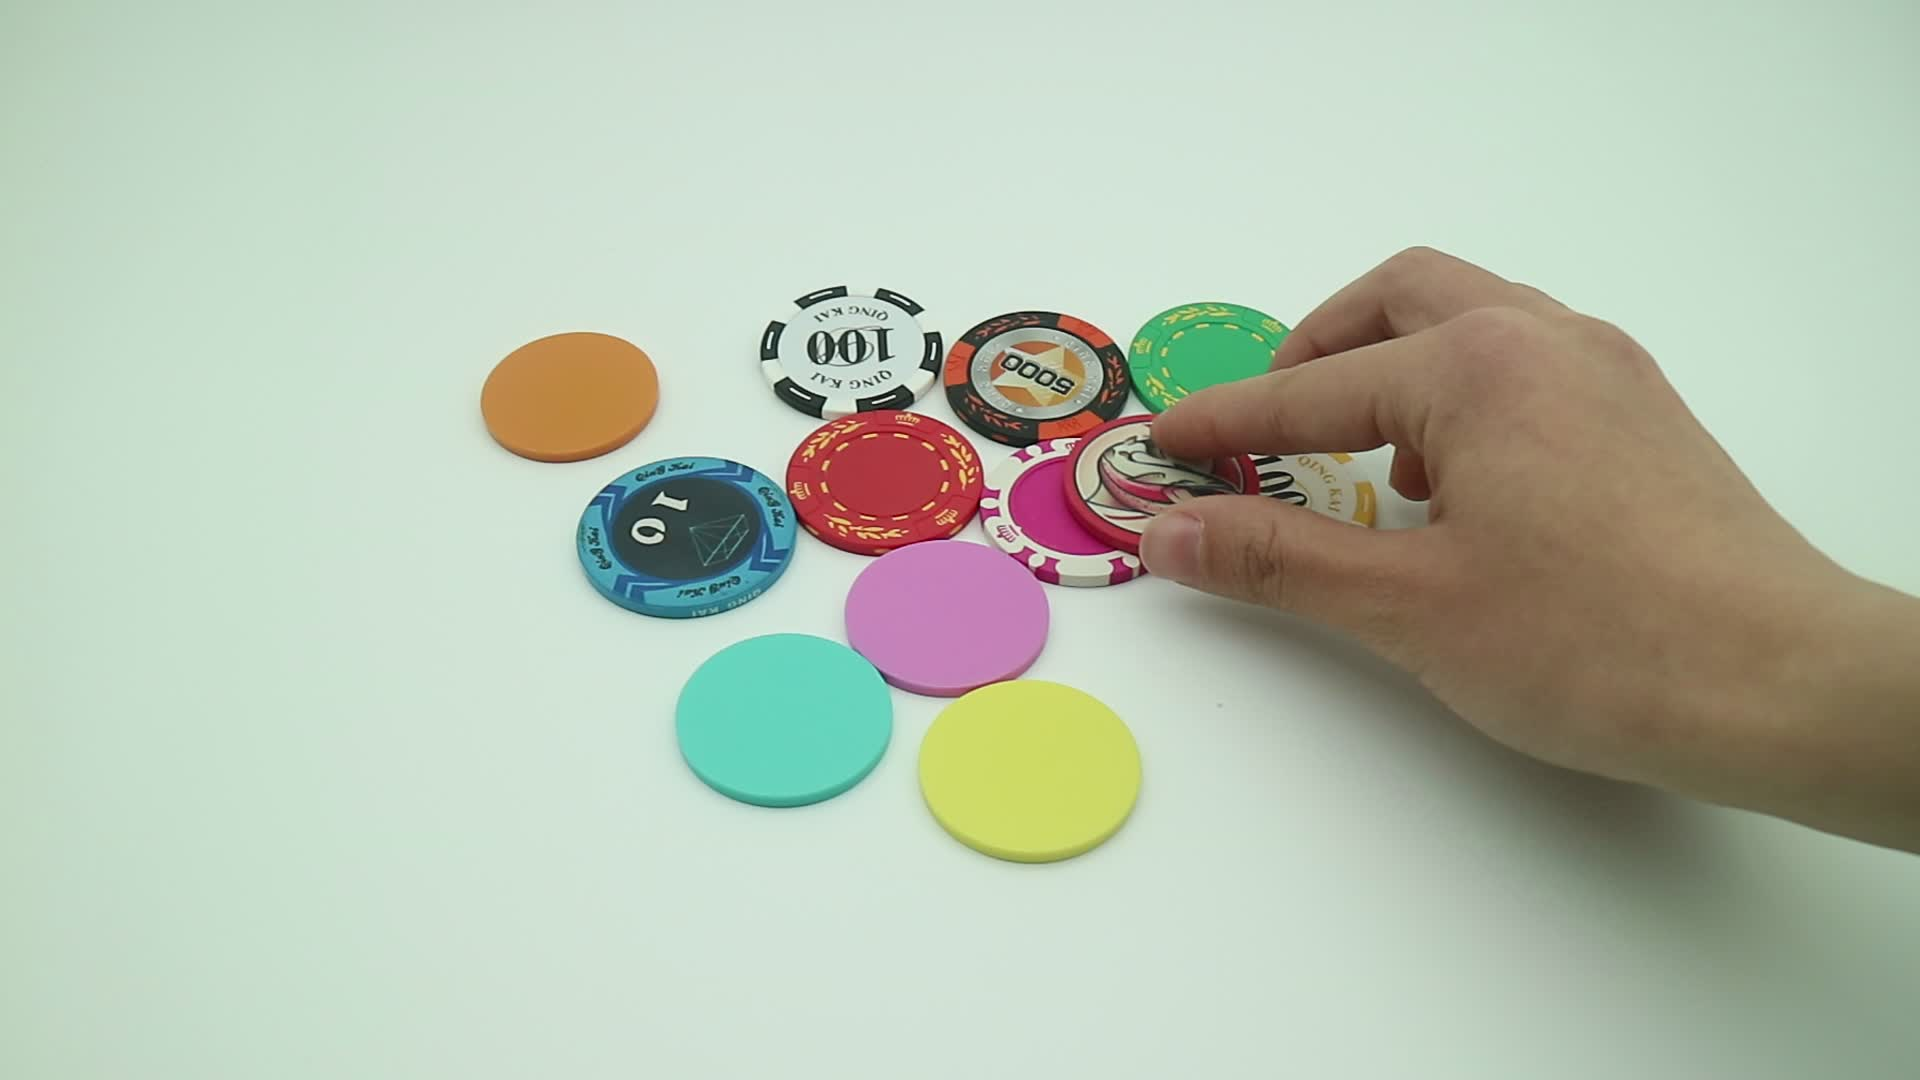 Plastic Poker Chips Card Game, Opaque Plastic Learning Counters Mini Poker Chips Game Tokens with Storage Box